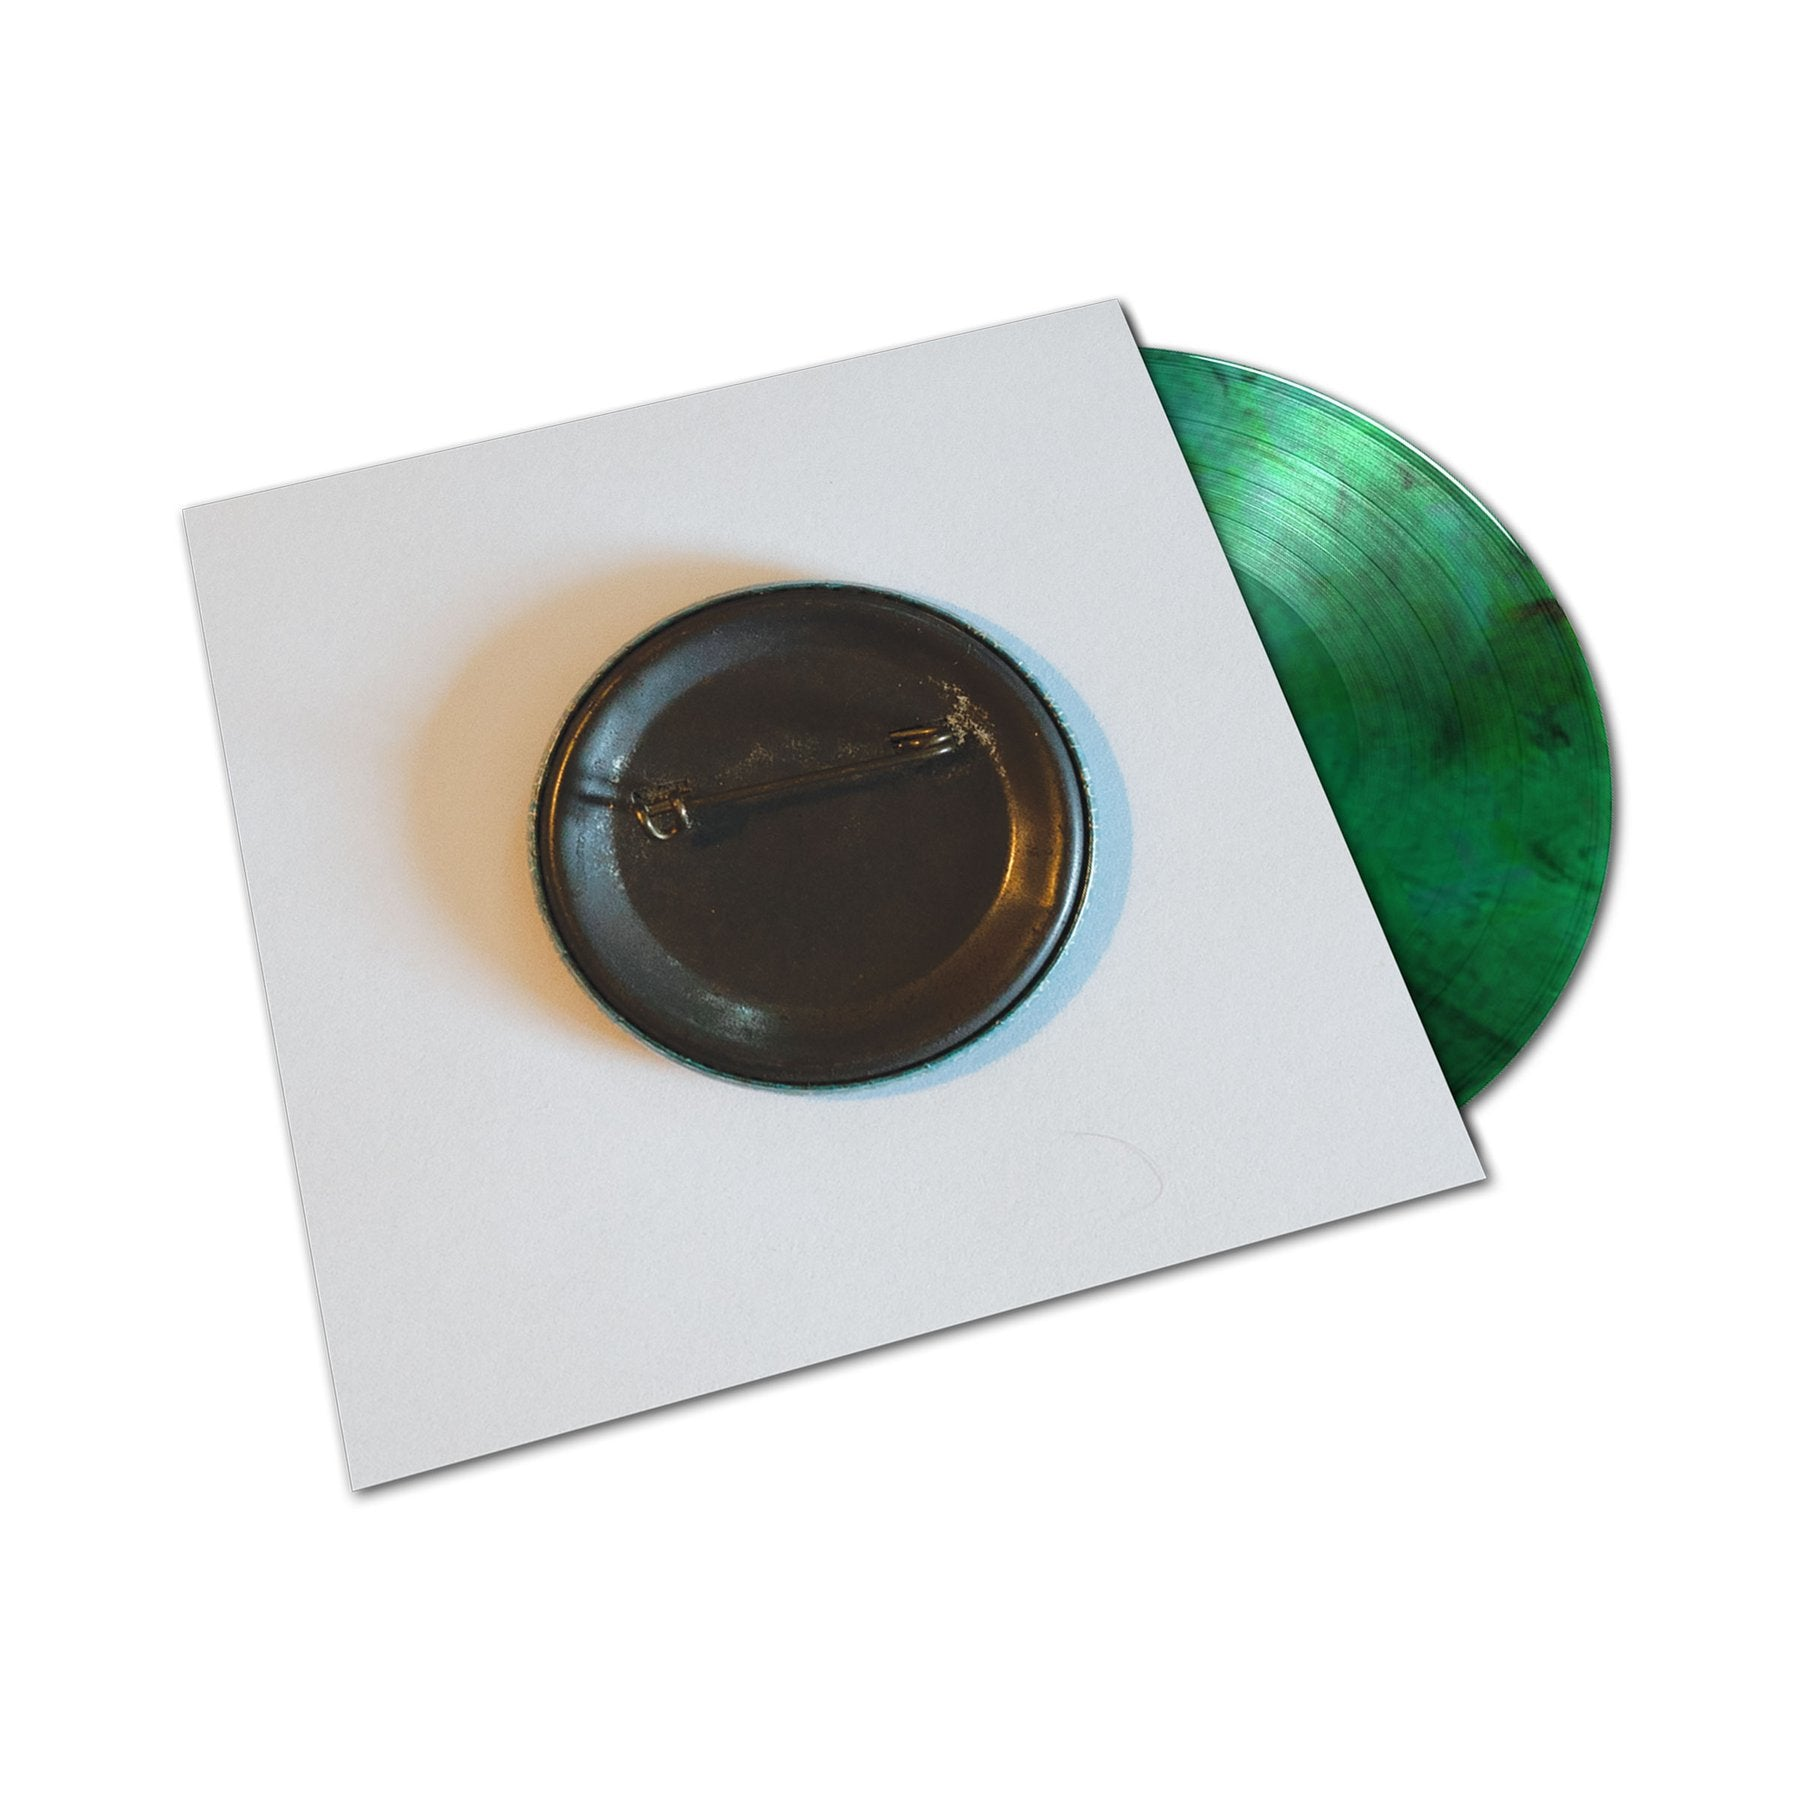 Mac Demarco - Here Comes The Cowboy Green/Black Colour Limited Edition Vinyl Record, Vinyl, X-Records